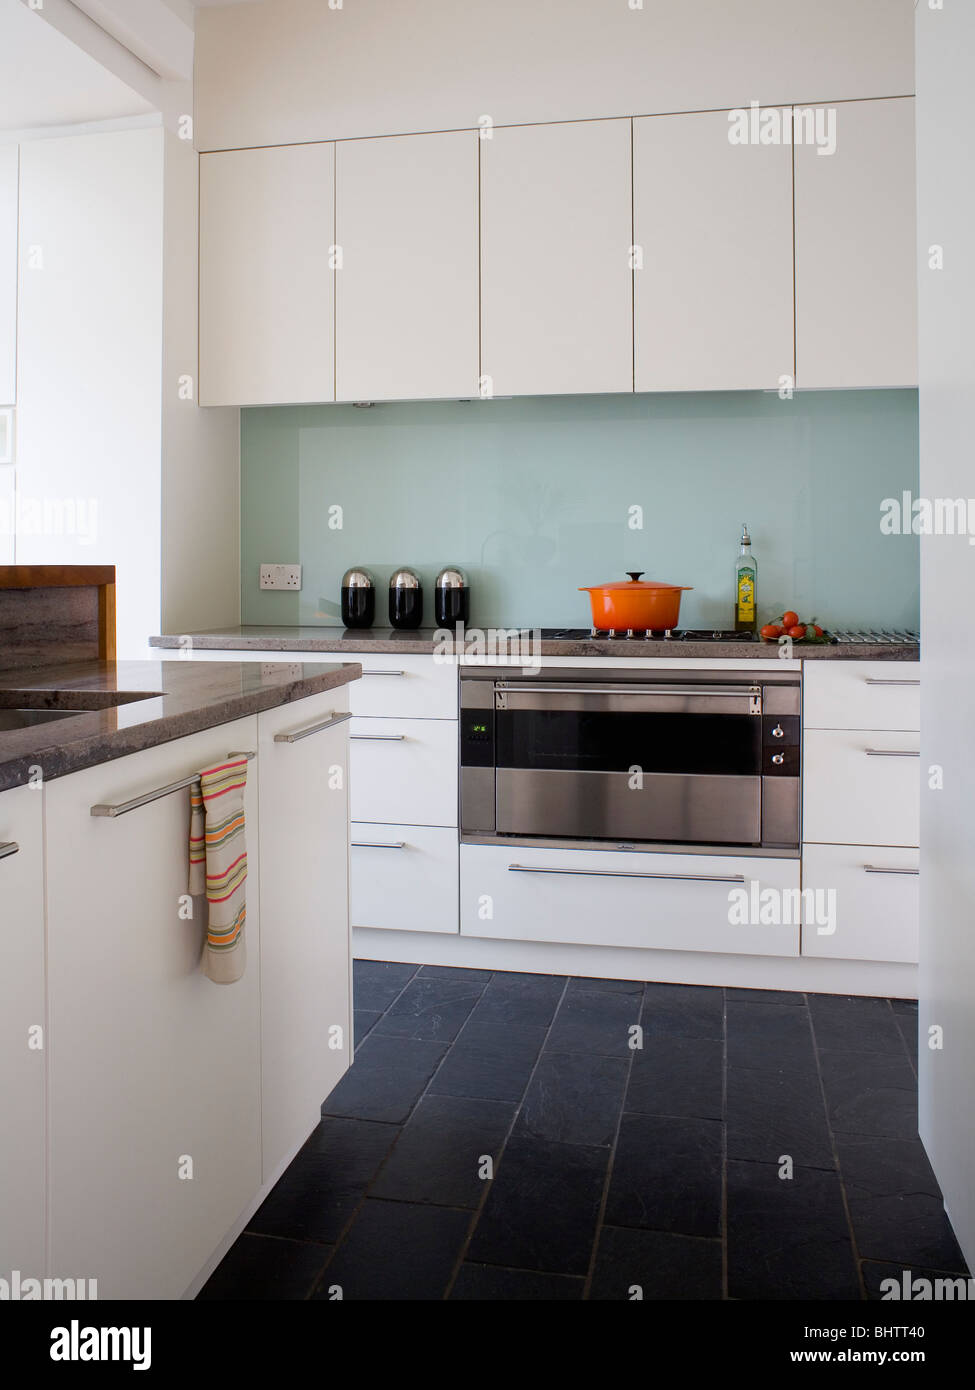 Black floor tiles in modern white kitchen with glass splash back black floor tiles in modern white kitchen with glass splash back behind stainless steel oven dailygadgetfo Image collections